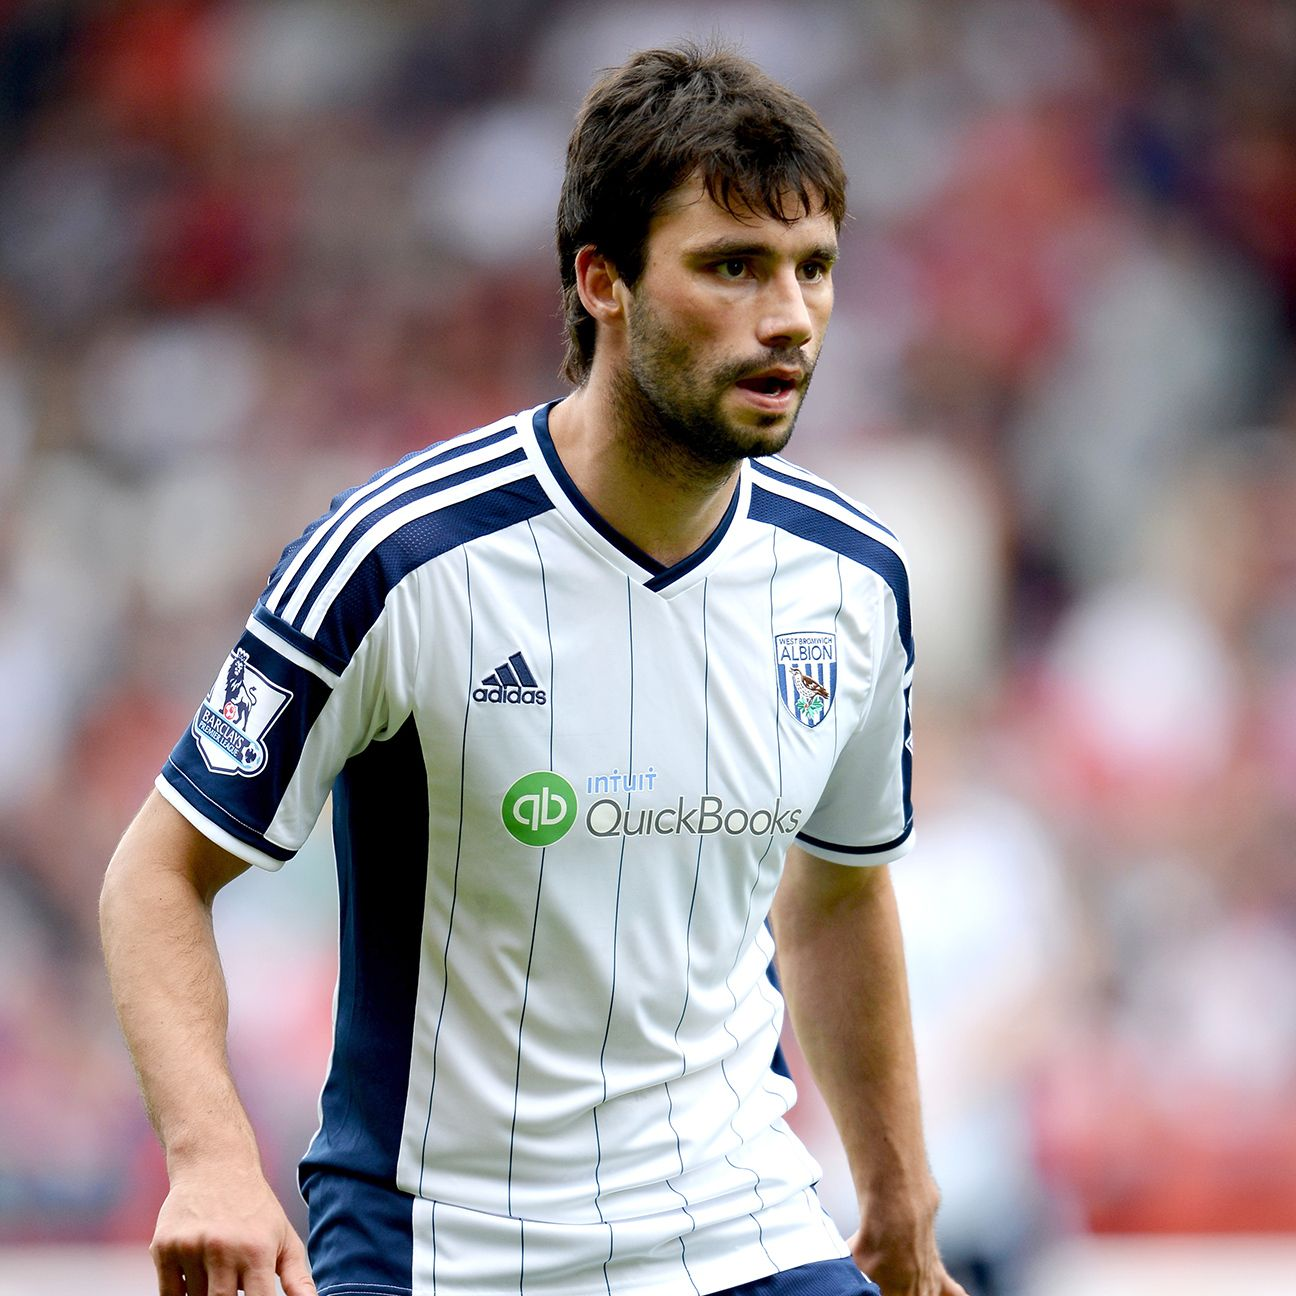 Claudio Yacob's hard-nosed play will be sorely needed by West Brom at Chelsea.